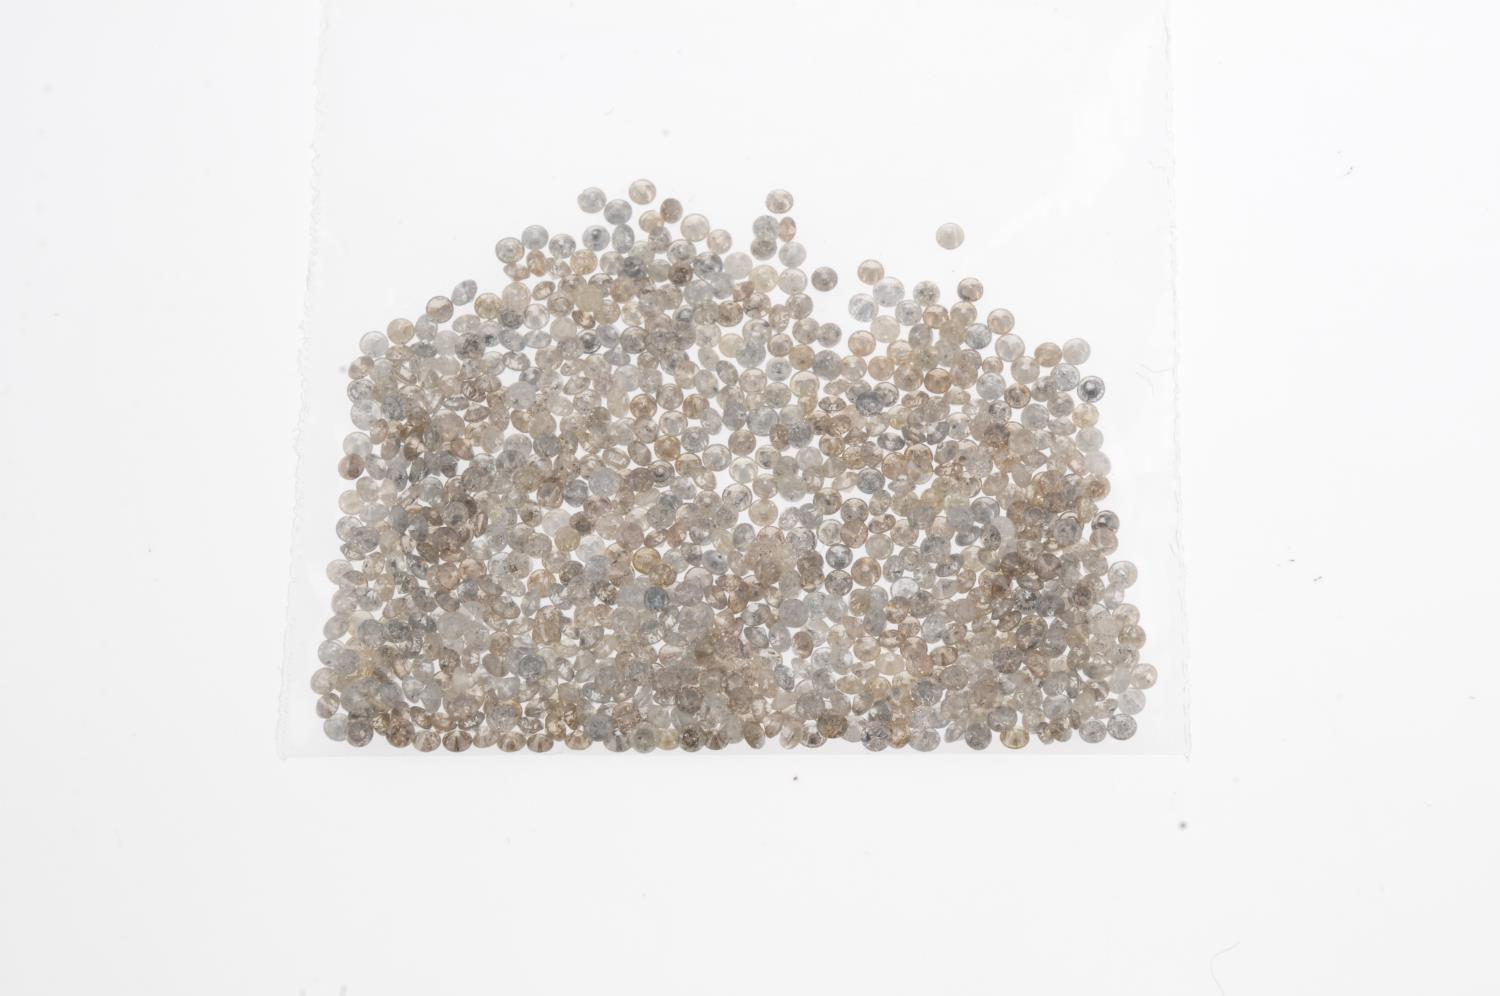 A small selection of round brilliant-cut melee diamonds and 'brown' and 'yellow' melee diamonds. - Image 2 of 2